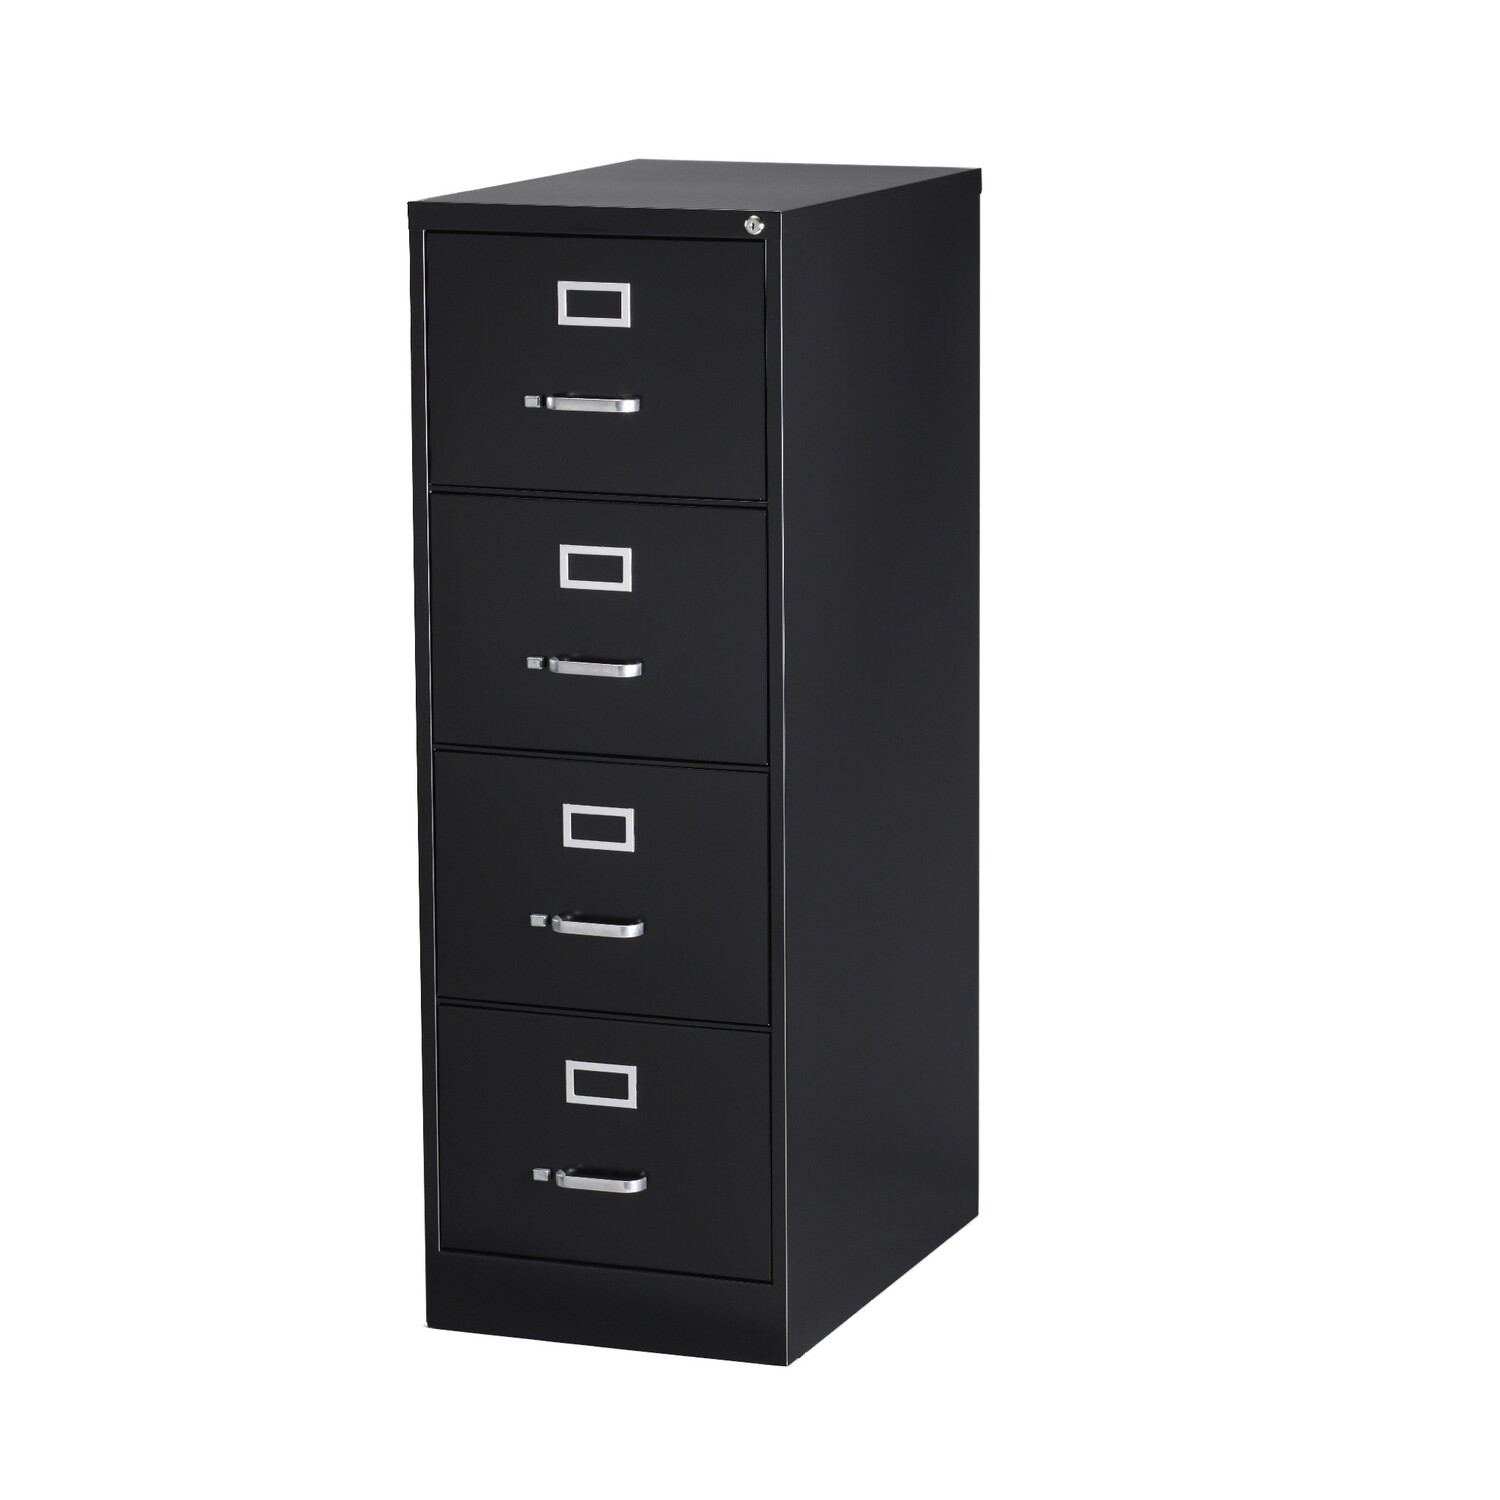 Vertical File Cabinet, 4-Drawer, LEGAL, Black